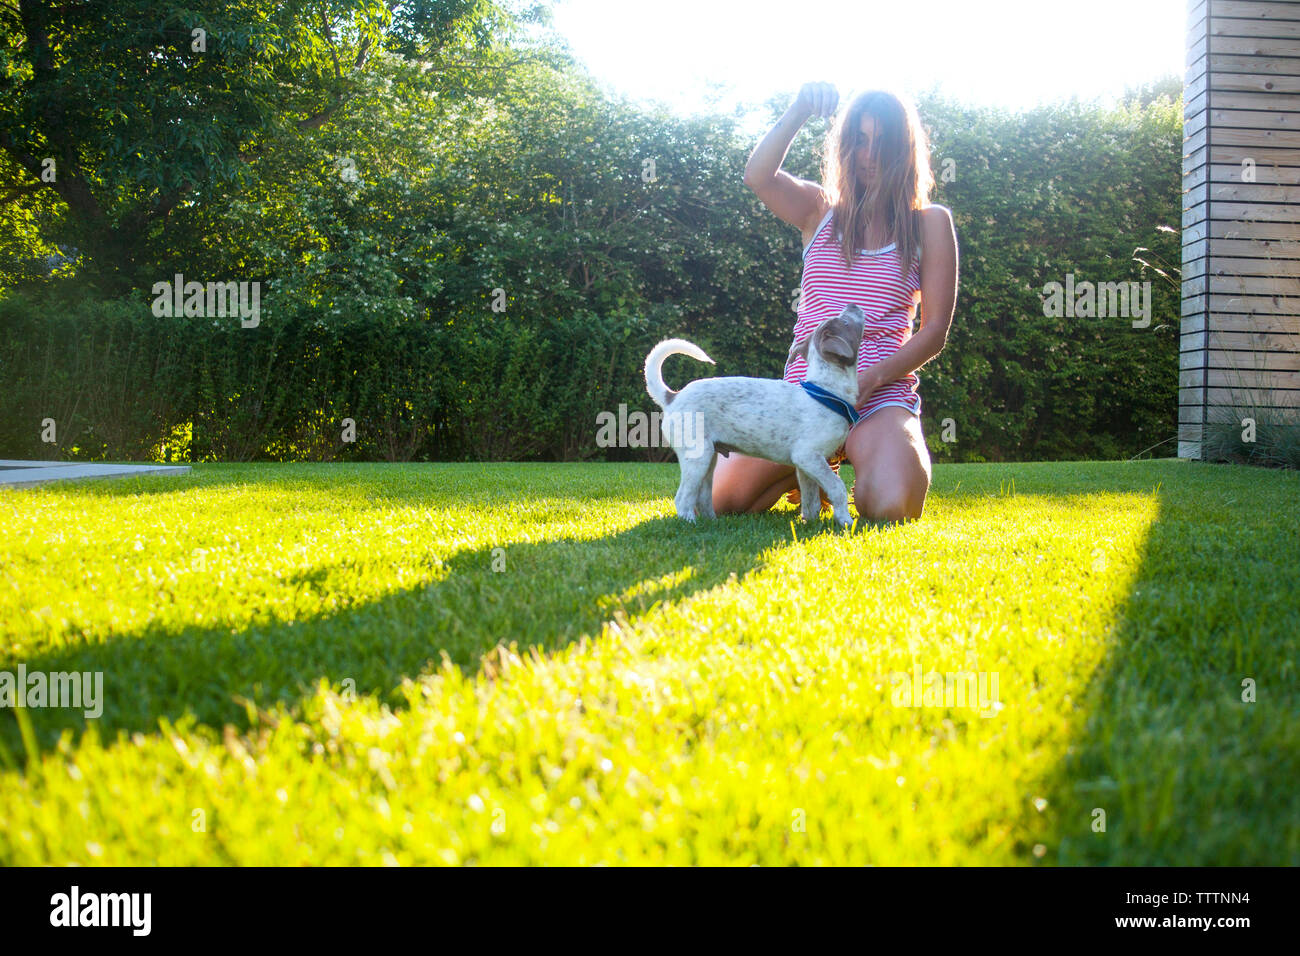 Woman kneeling while playing with dog on grassy field at backyard - Stock Image